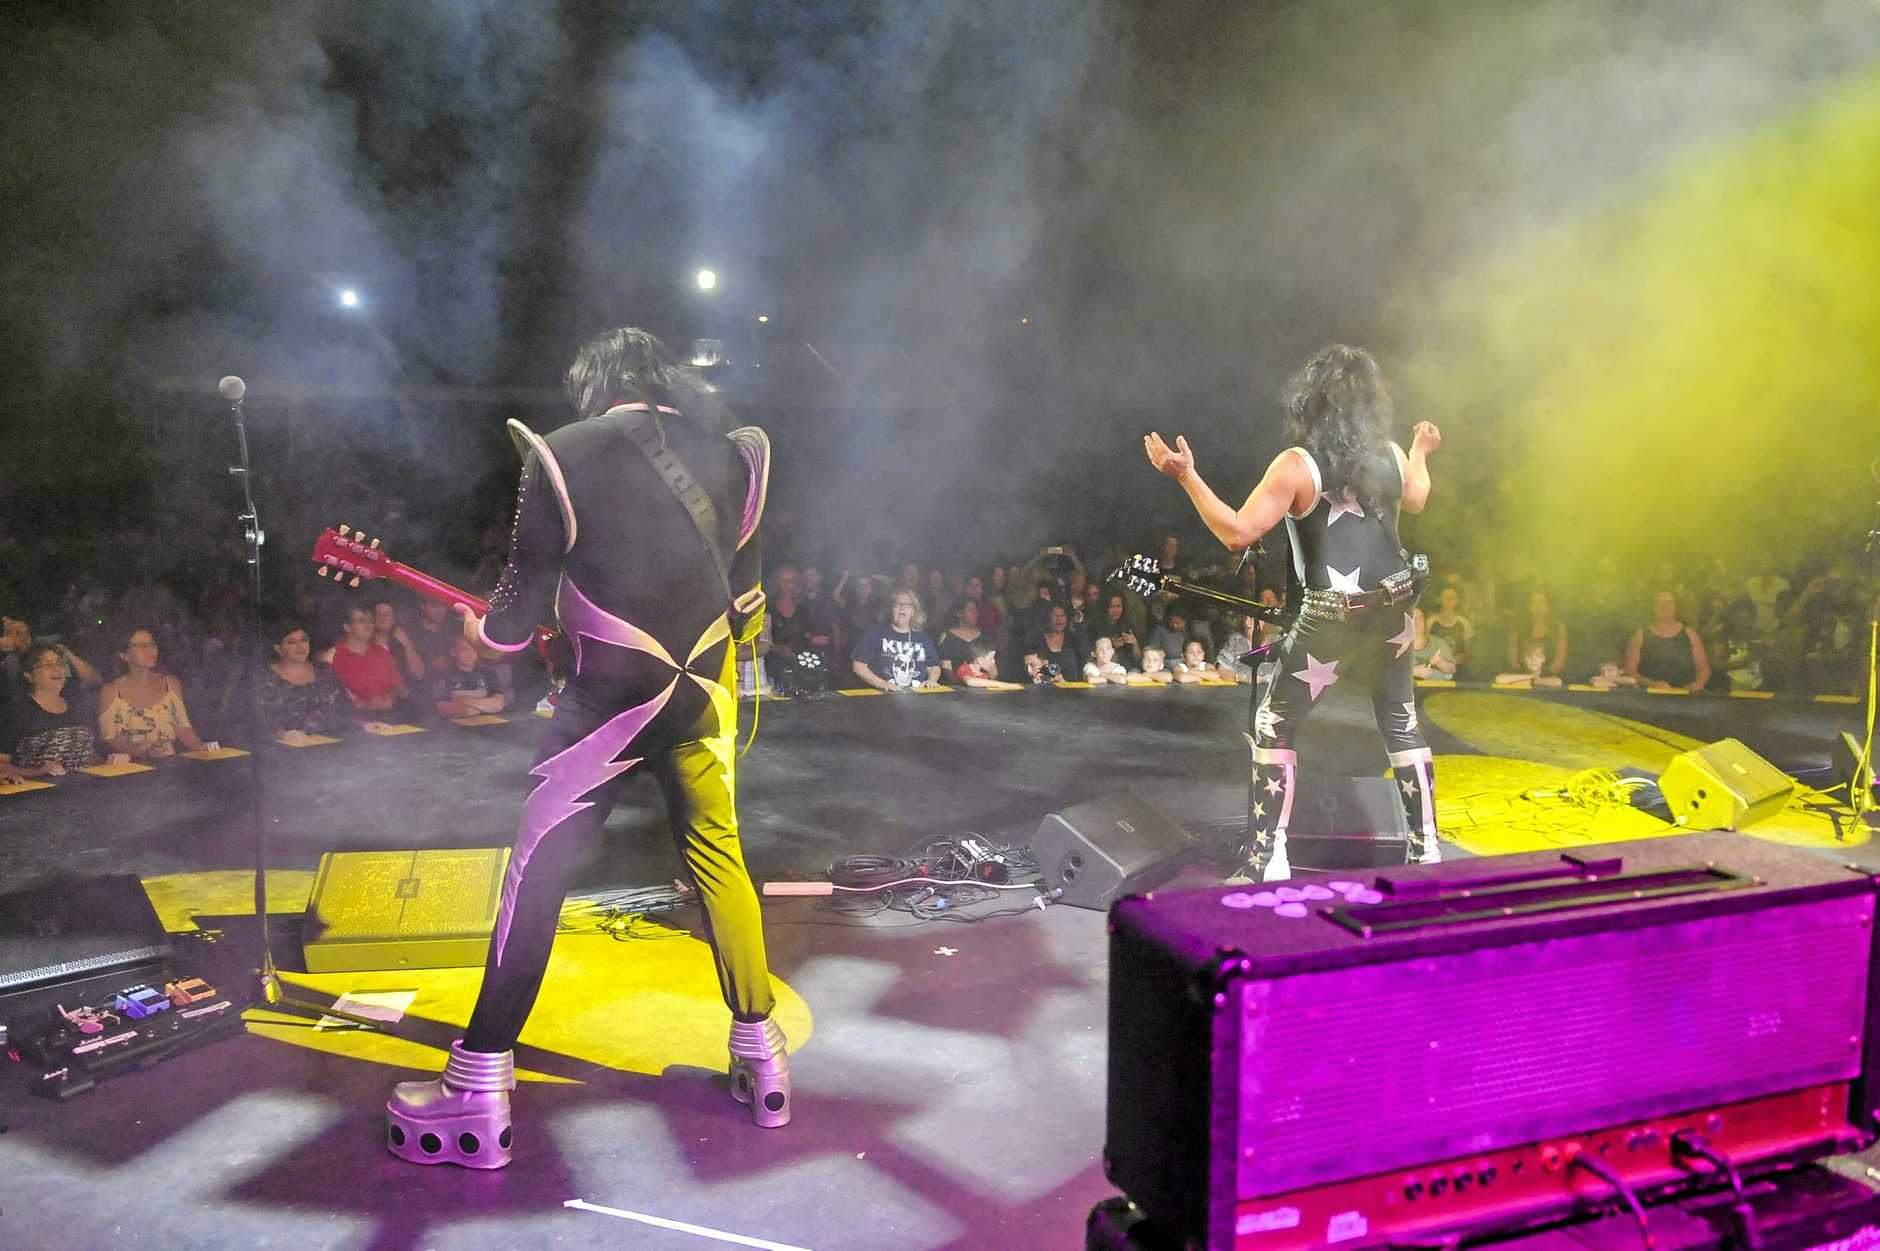 Kisstroyer headlined Gladstone's 2018 Harbour Festival at the Gladstone Ports Corporation's Marina Main Stage, on Gladstone Regional Council's Sensational Saturday Night.